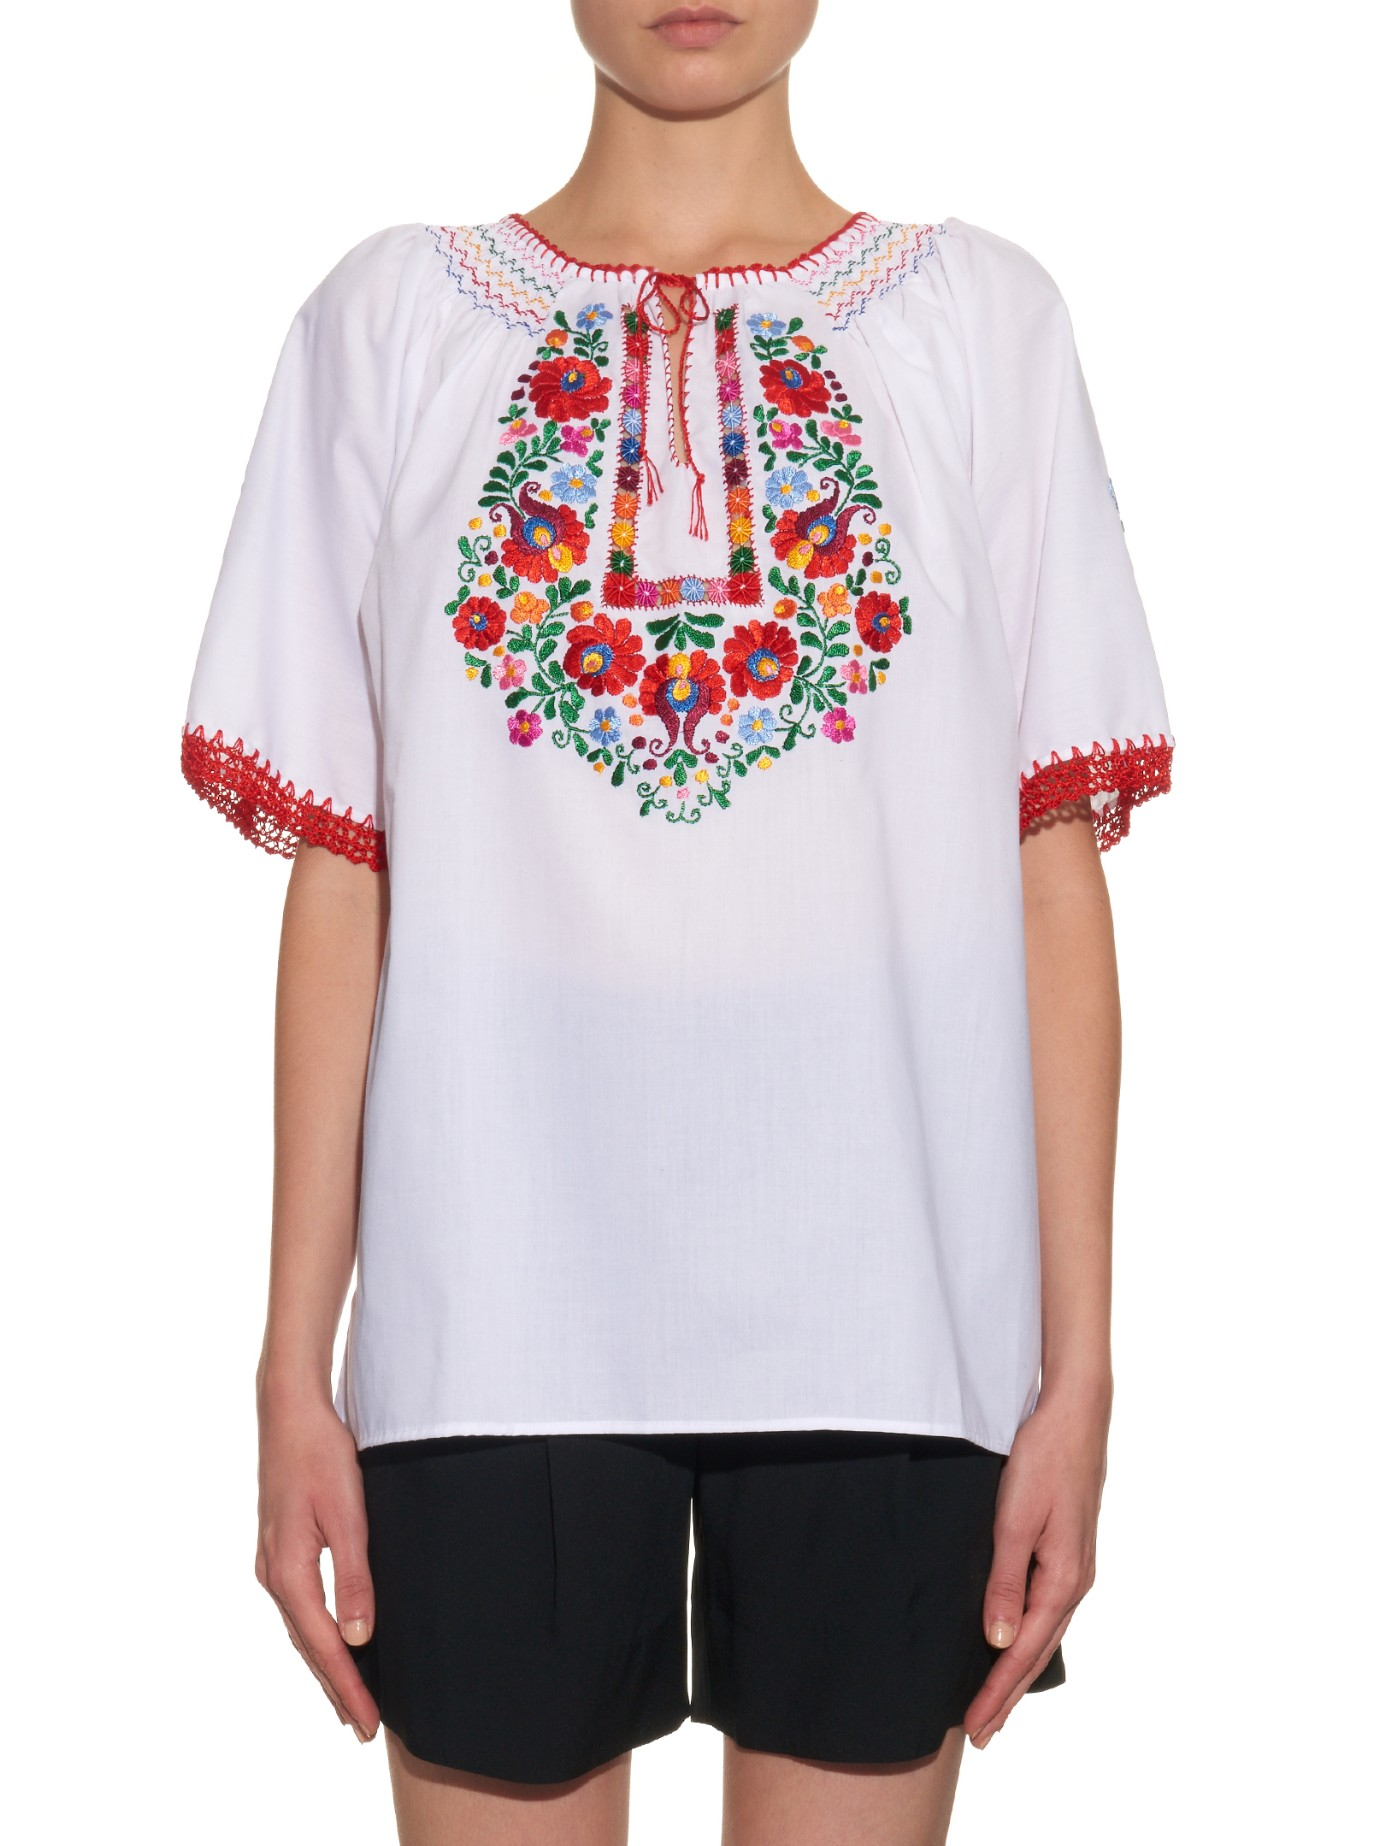 SHIRTS - Blouses Muzungu Sisters Buy Cheap Store Sale Order Discount Websites Clearance Fast Delivery RxcG9Ps